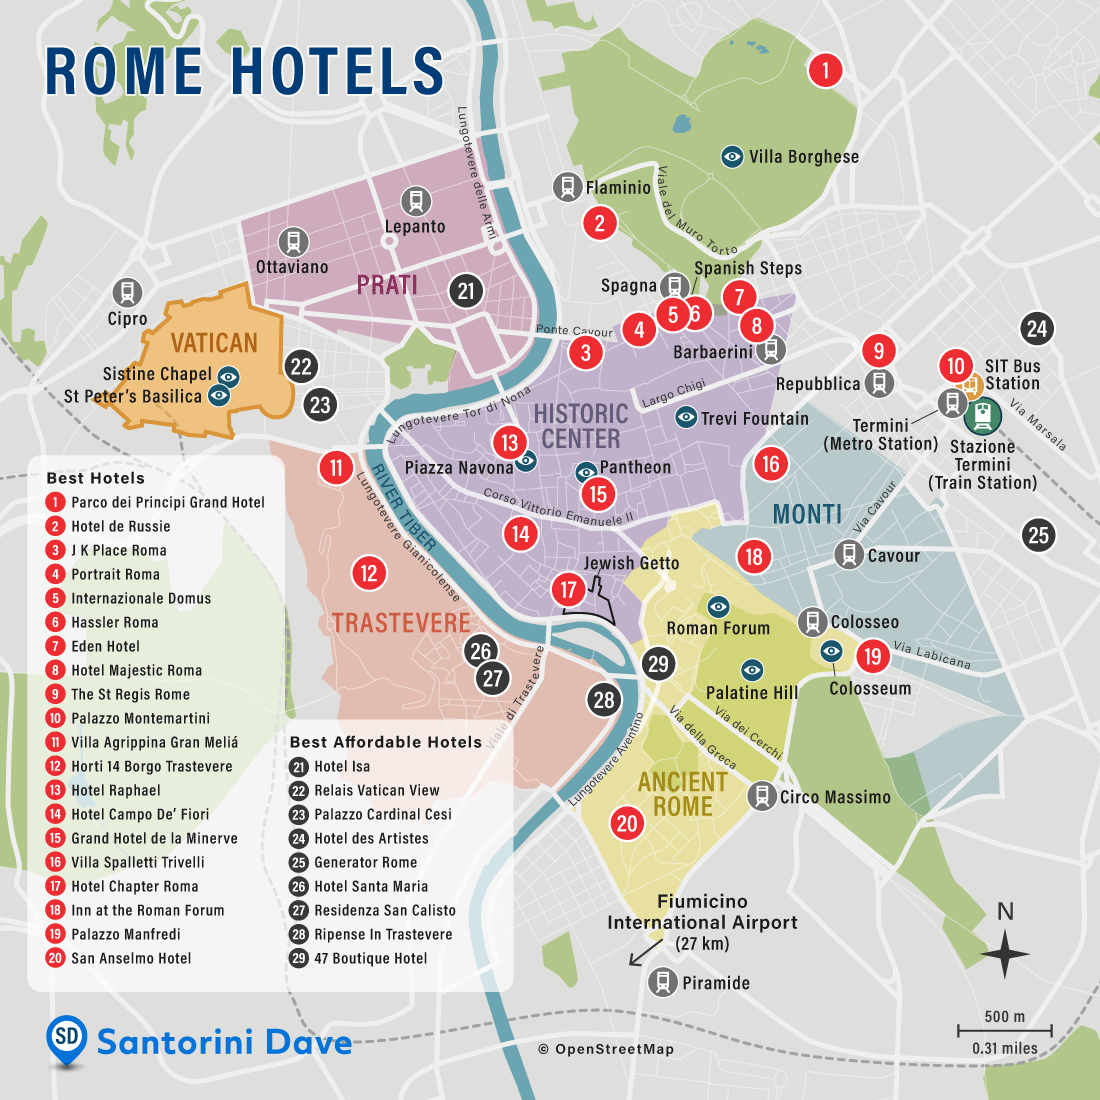 Map of Rome Hotels and Neighborhoods